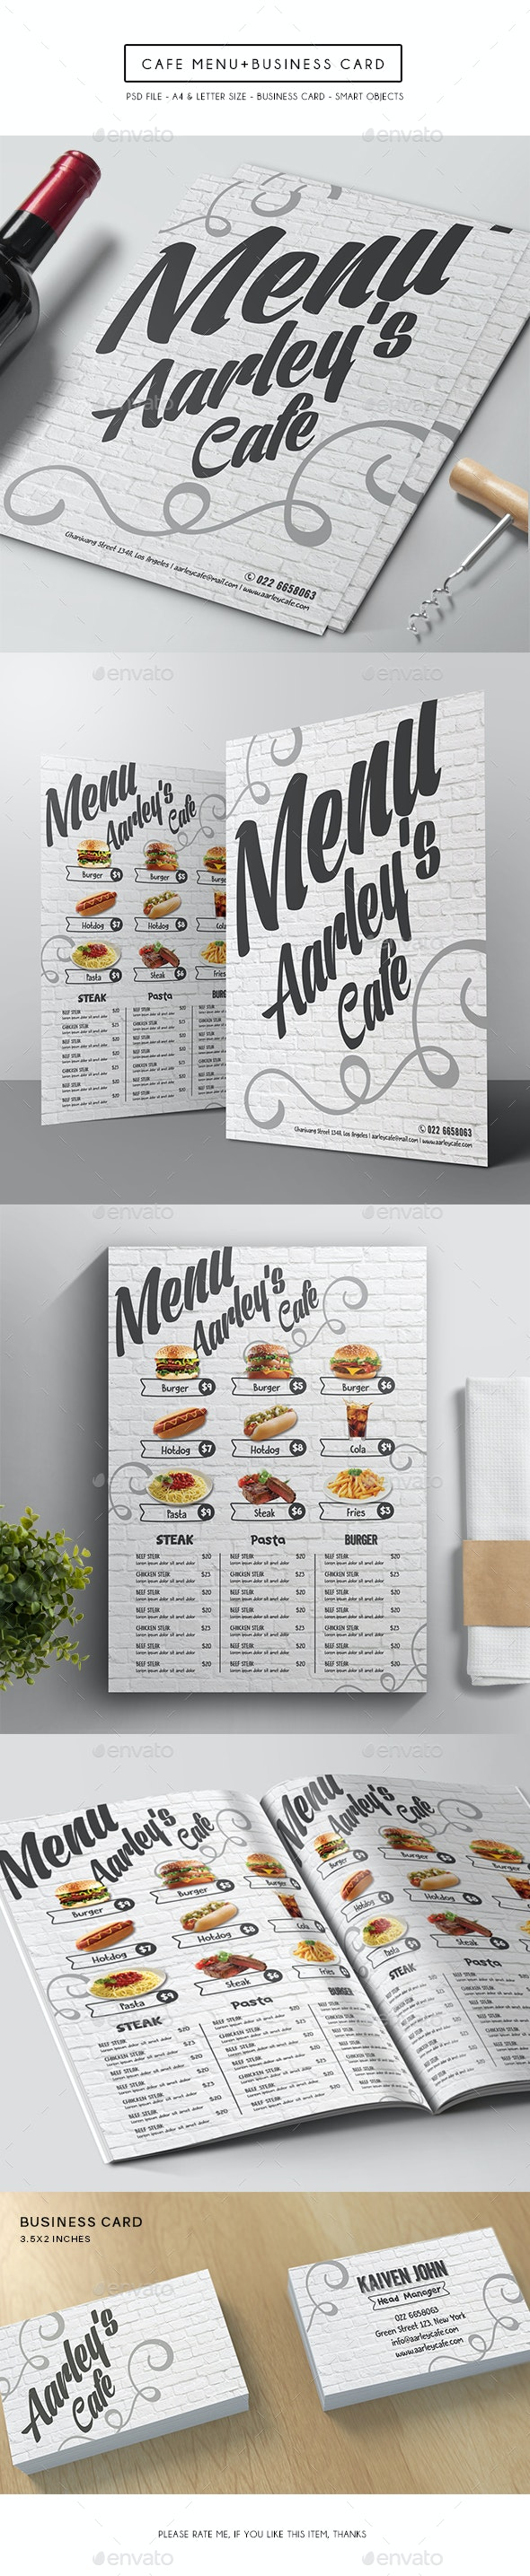 Cafe Menu + Business Card - Food Menus Print Templates